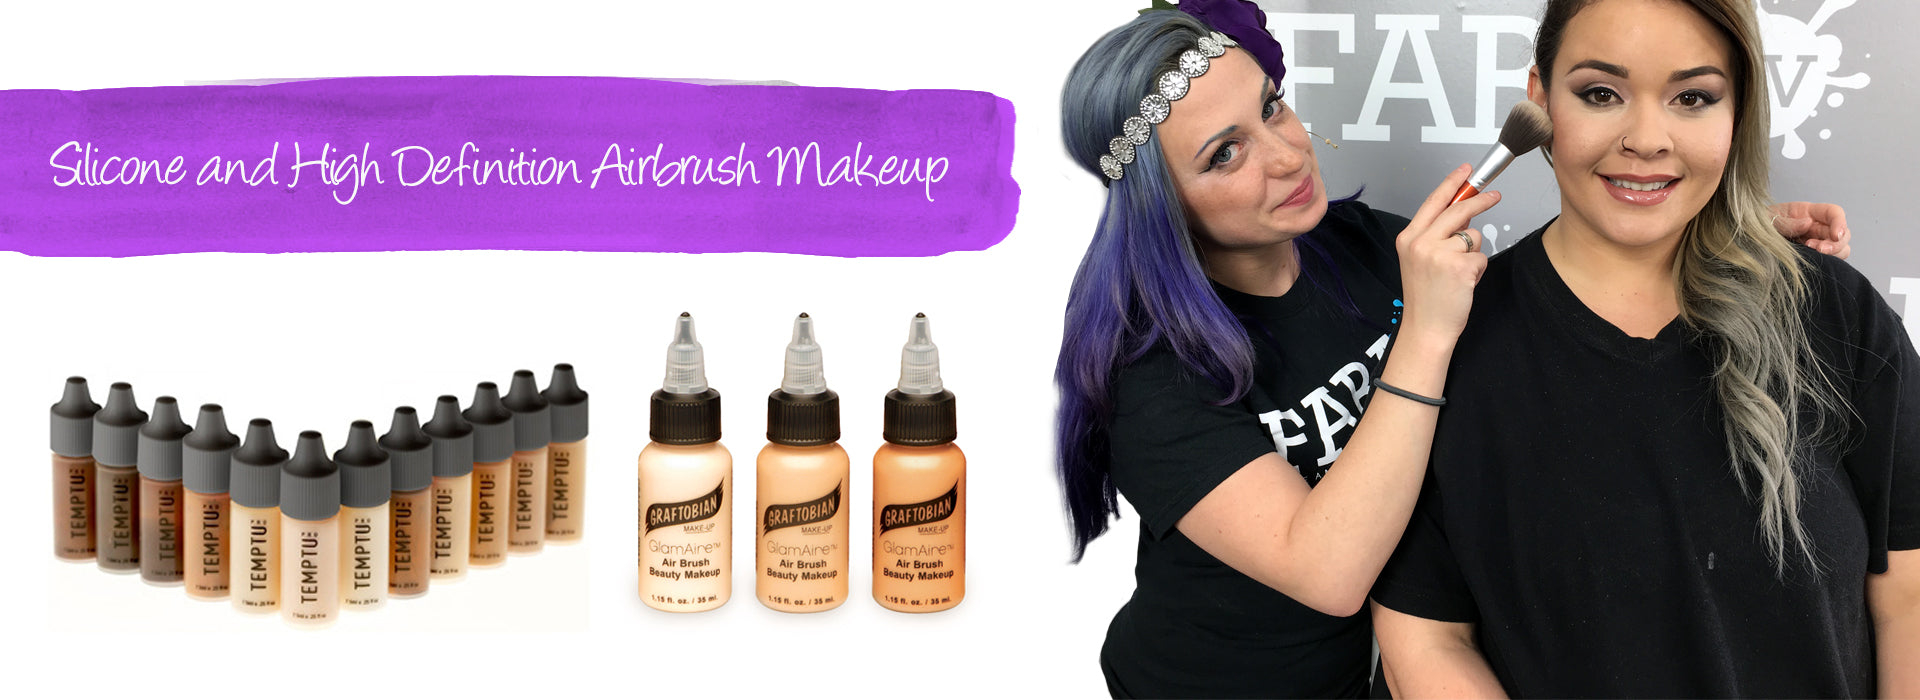 Silicone & High Definition Airbrush Makeup